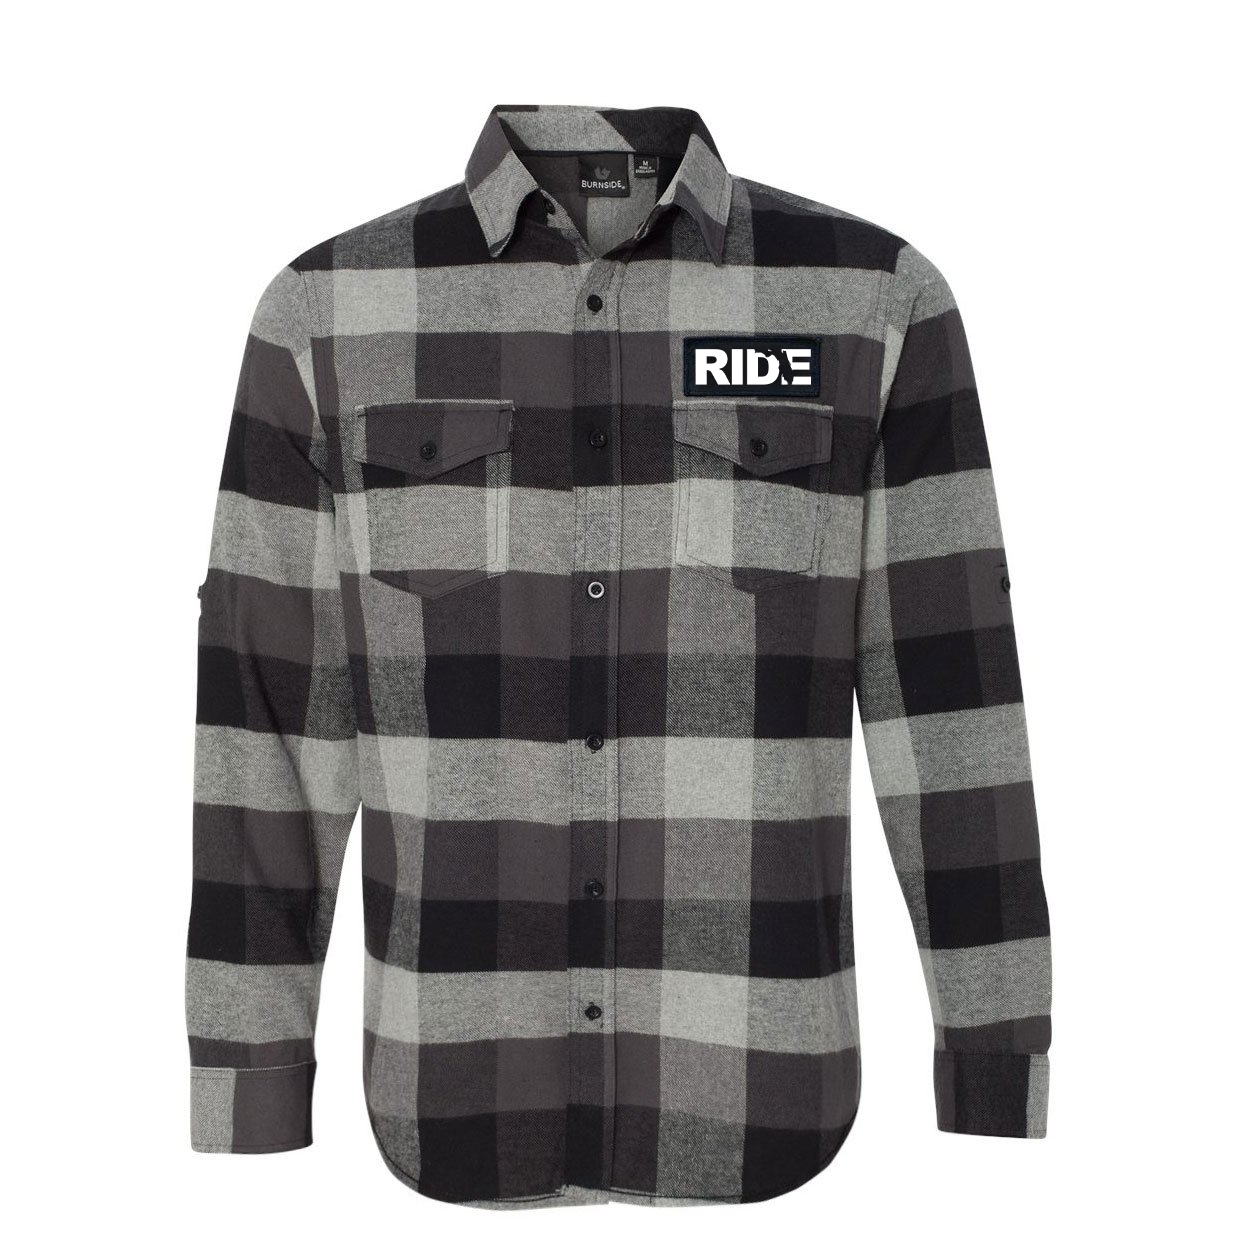 Ride Florida Classic Unisex Long Sleeve Woven Patch Flannel Shirt Black/Gray (White Logo)